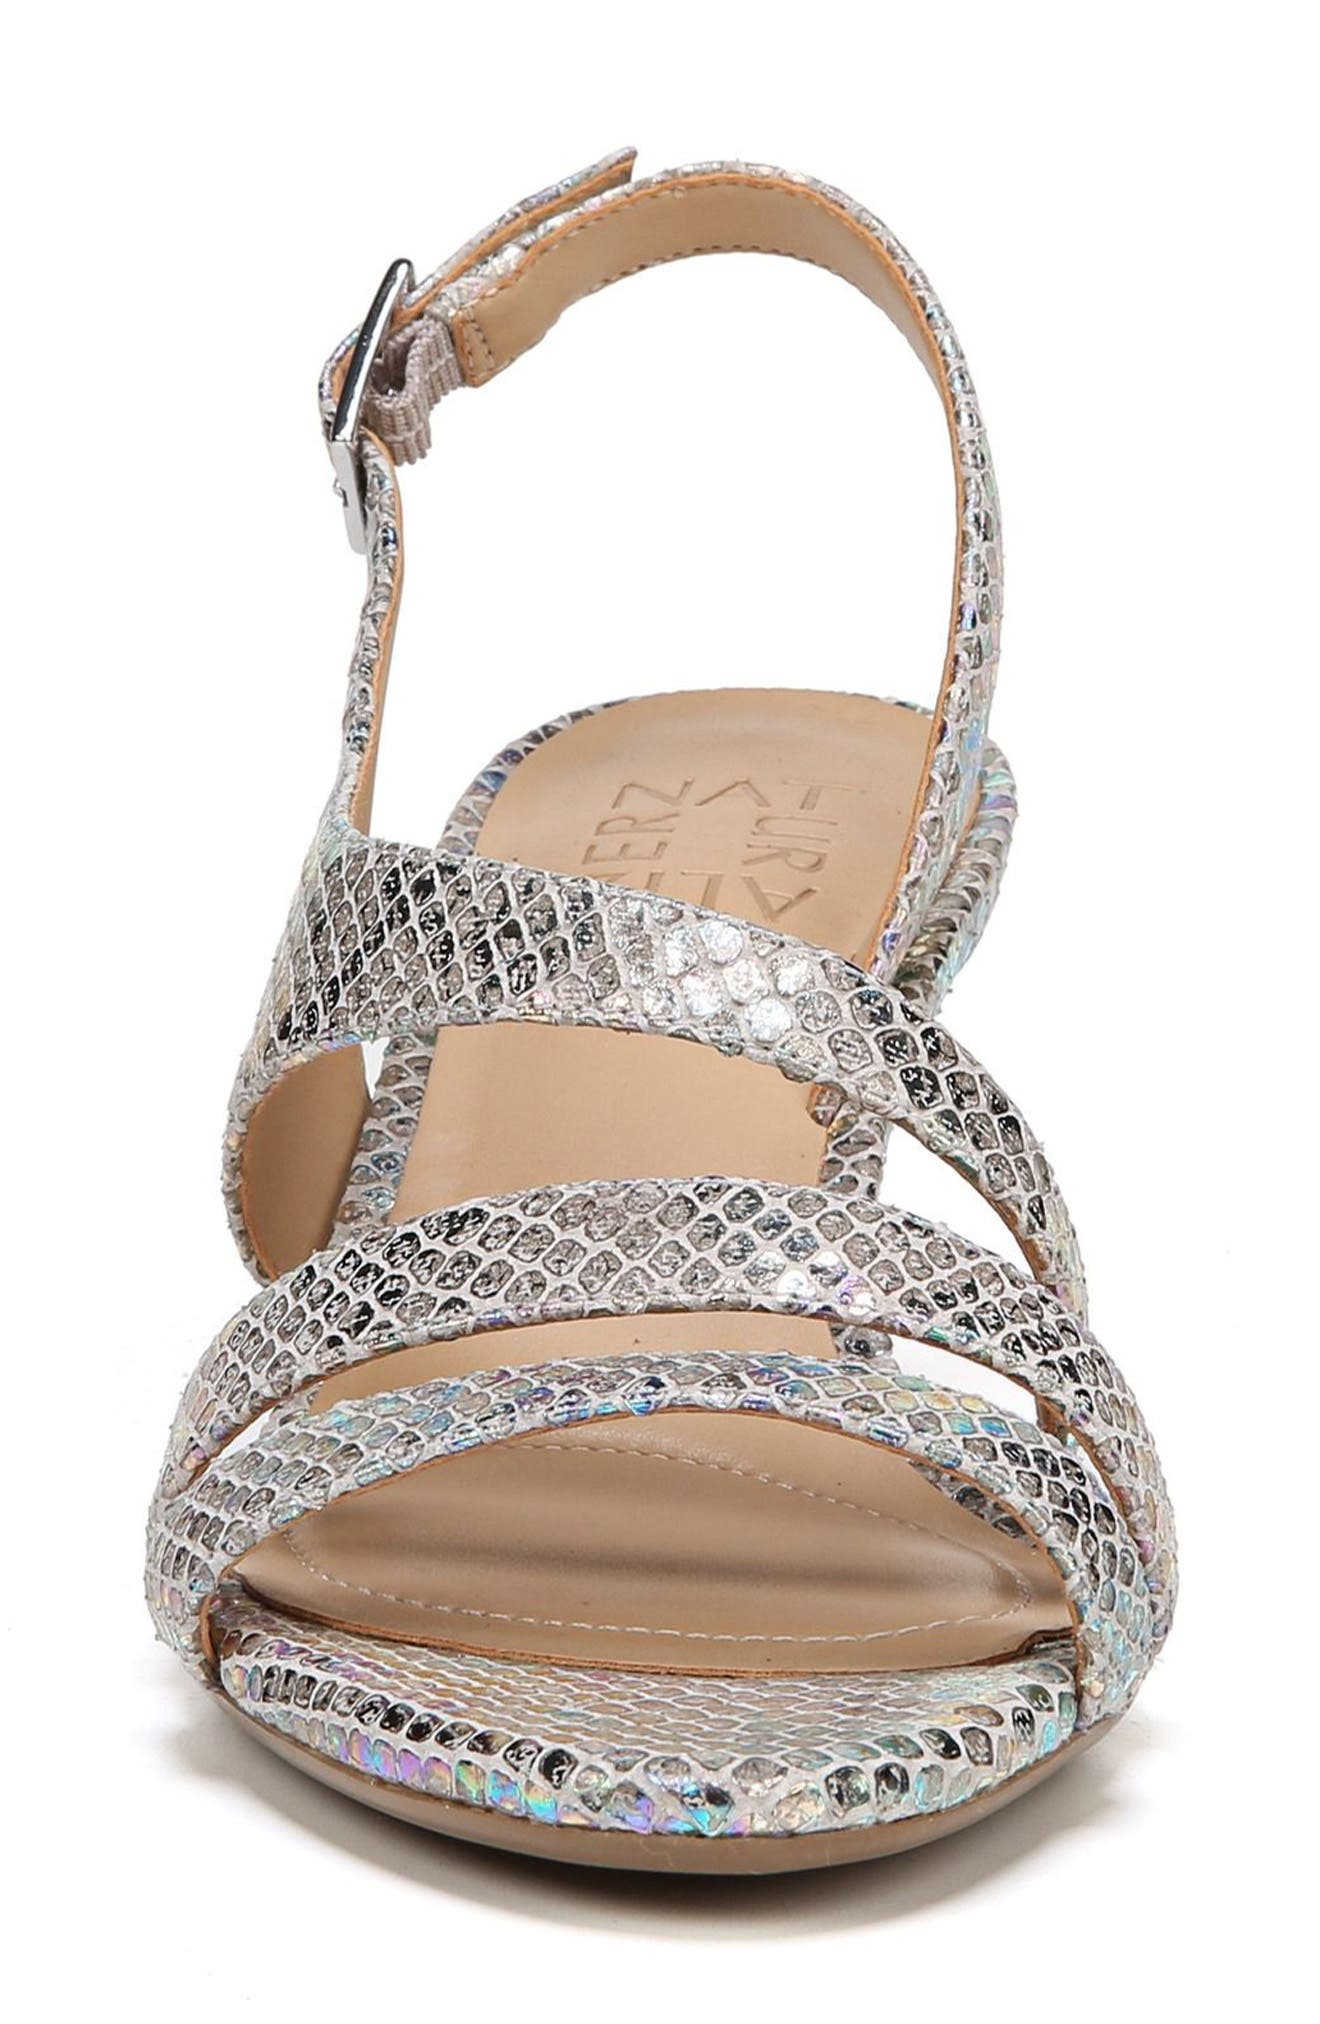 NATURALIZER, Taimi Sandal, Alternate thumbnail 4, color, SILVER SNAKE LEATHER PRINT